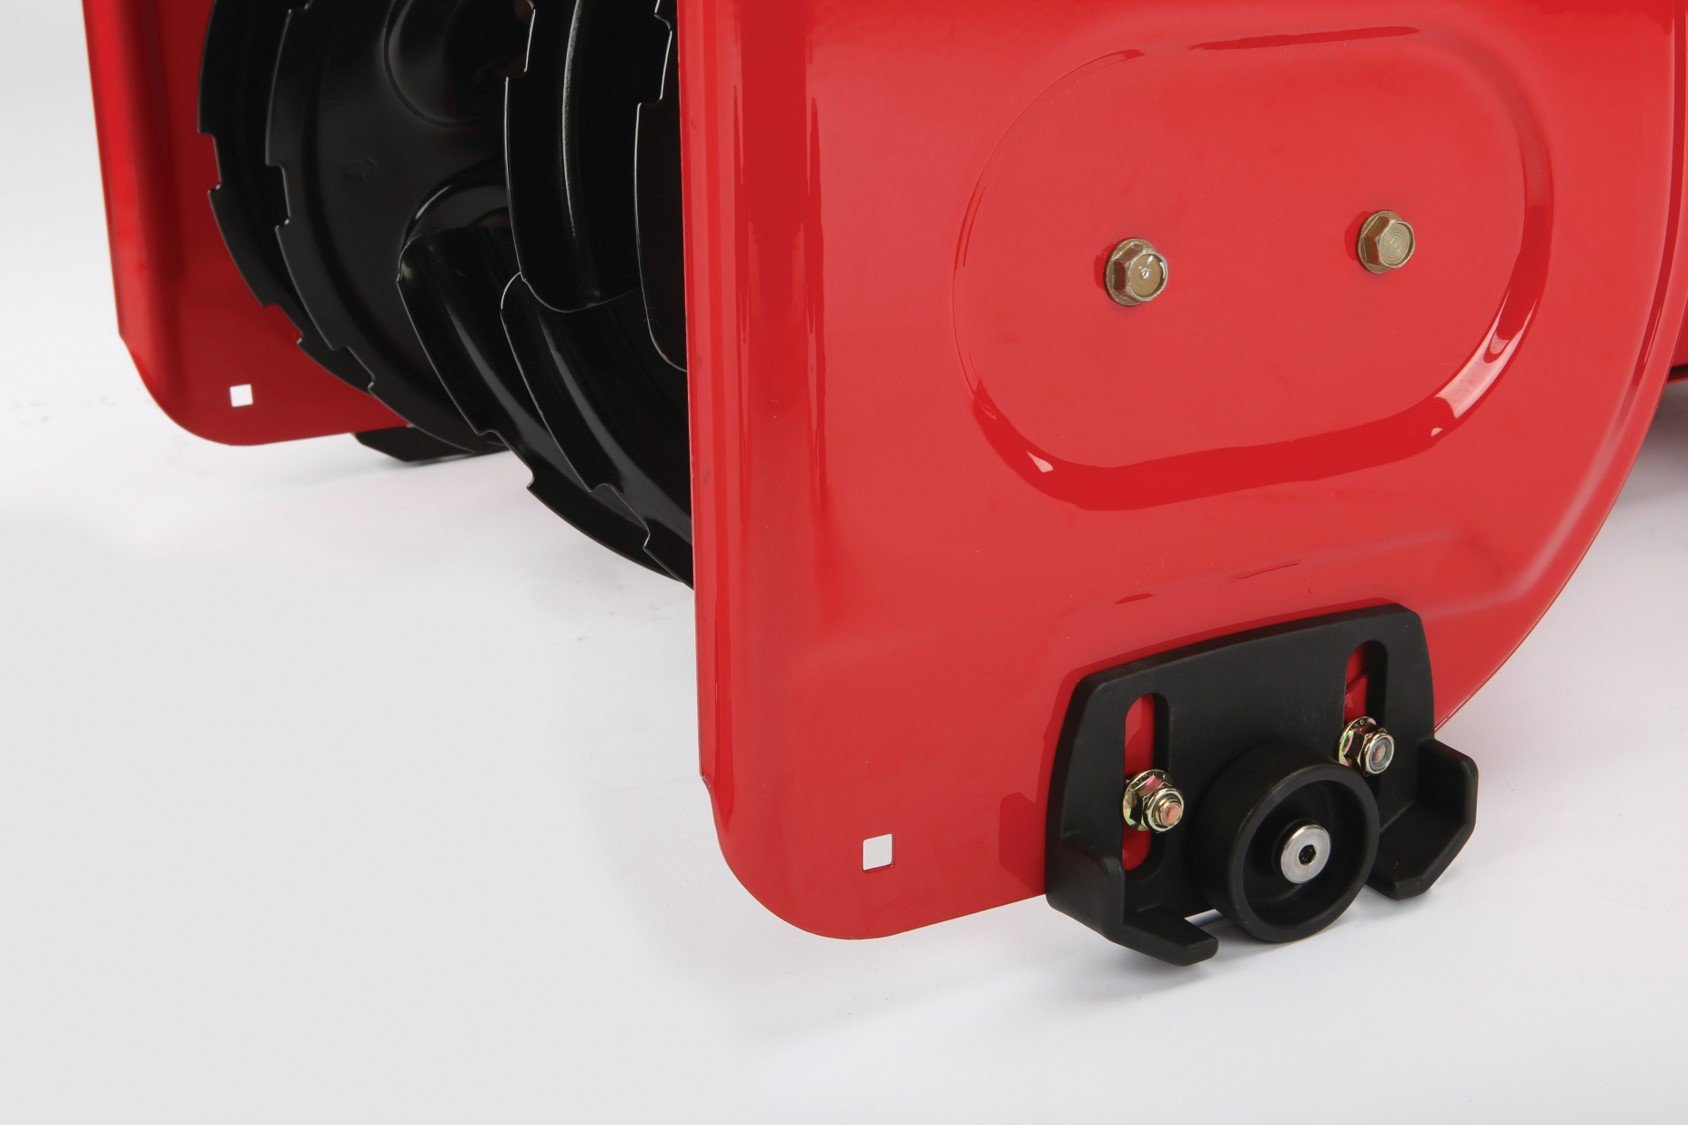 Arnold Universal Roller Skid Snow Thrower Shoes by Arnold (Image #6)